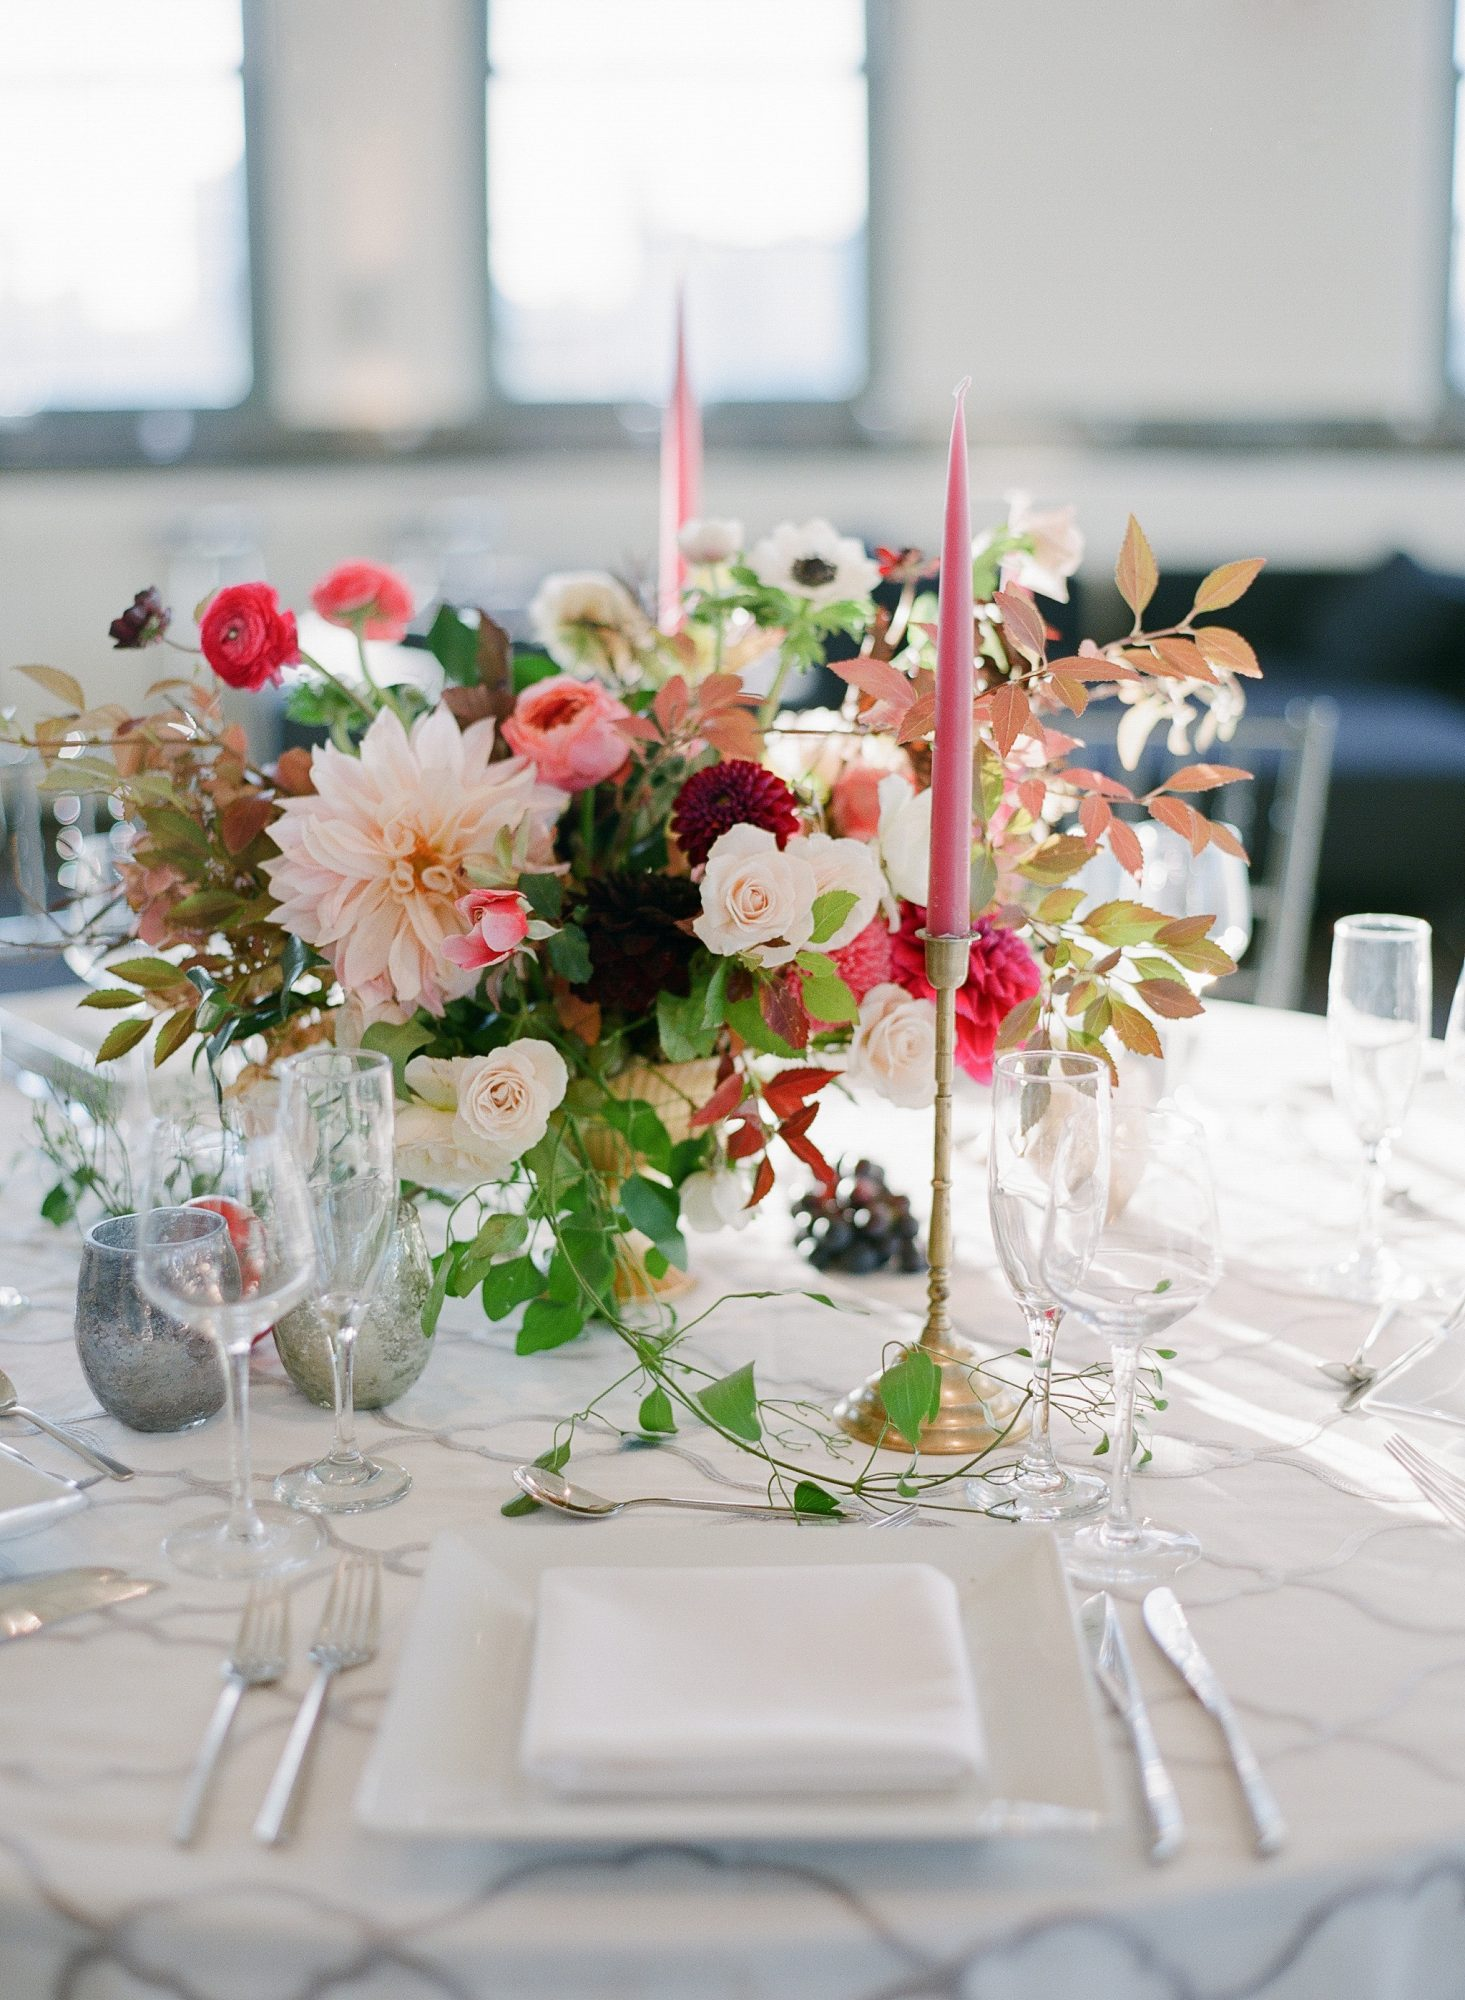 dahlia wedding centerpieces pink assortment with roses